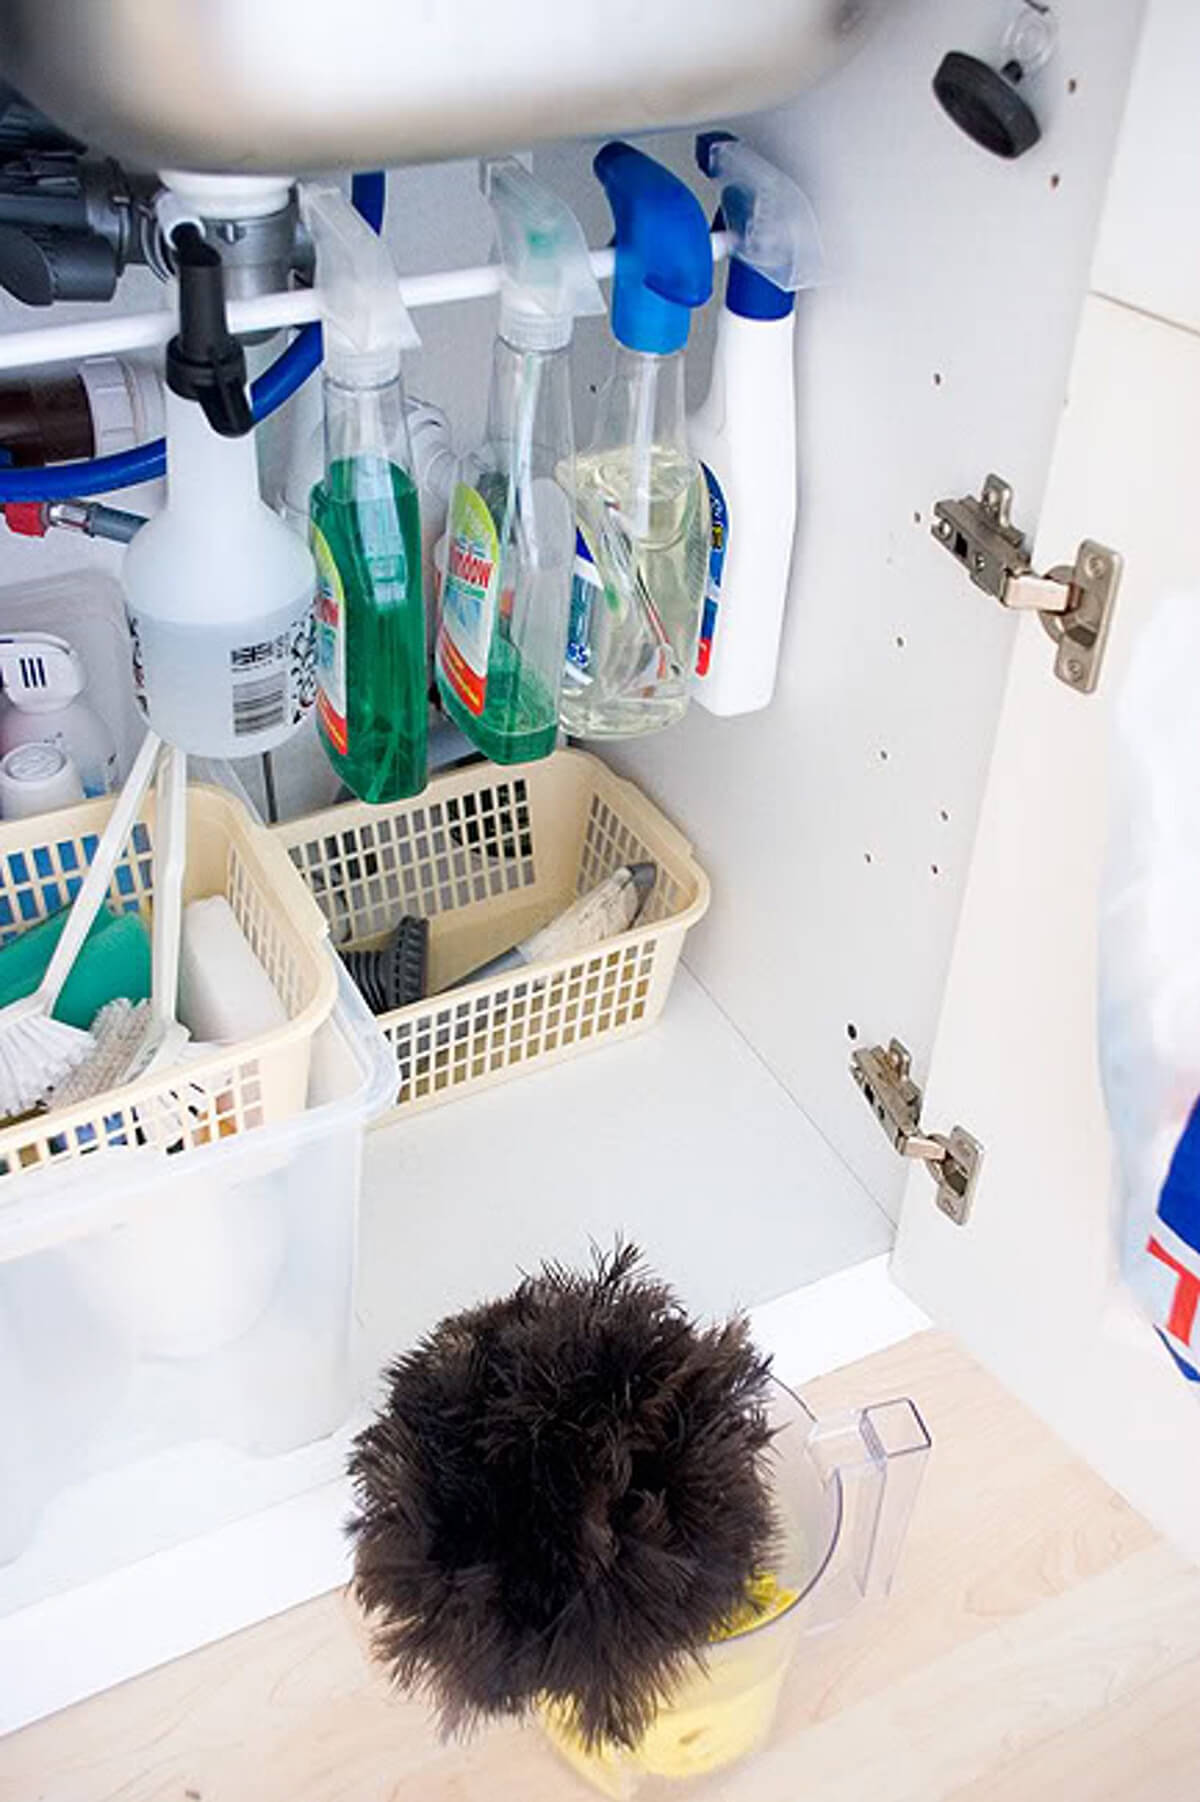 Tighten Up Under Sink Area with Tension Rods